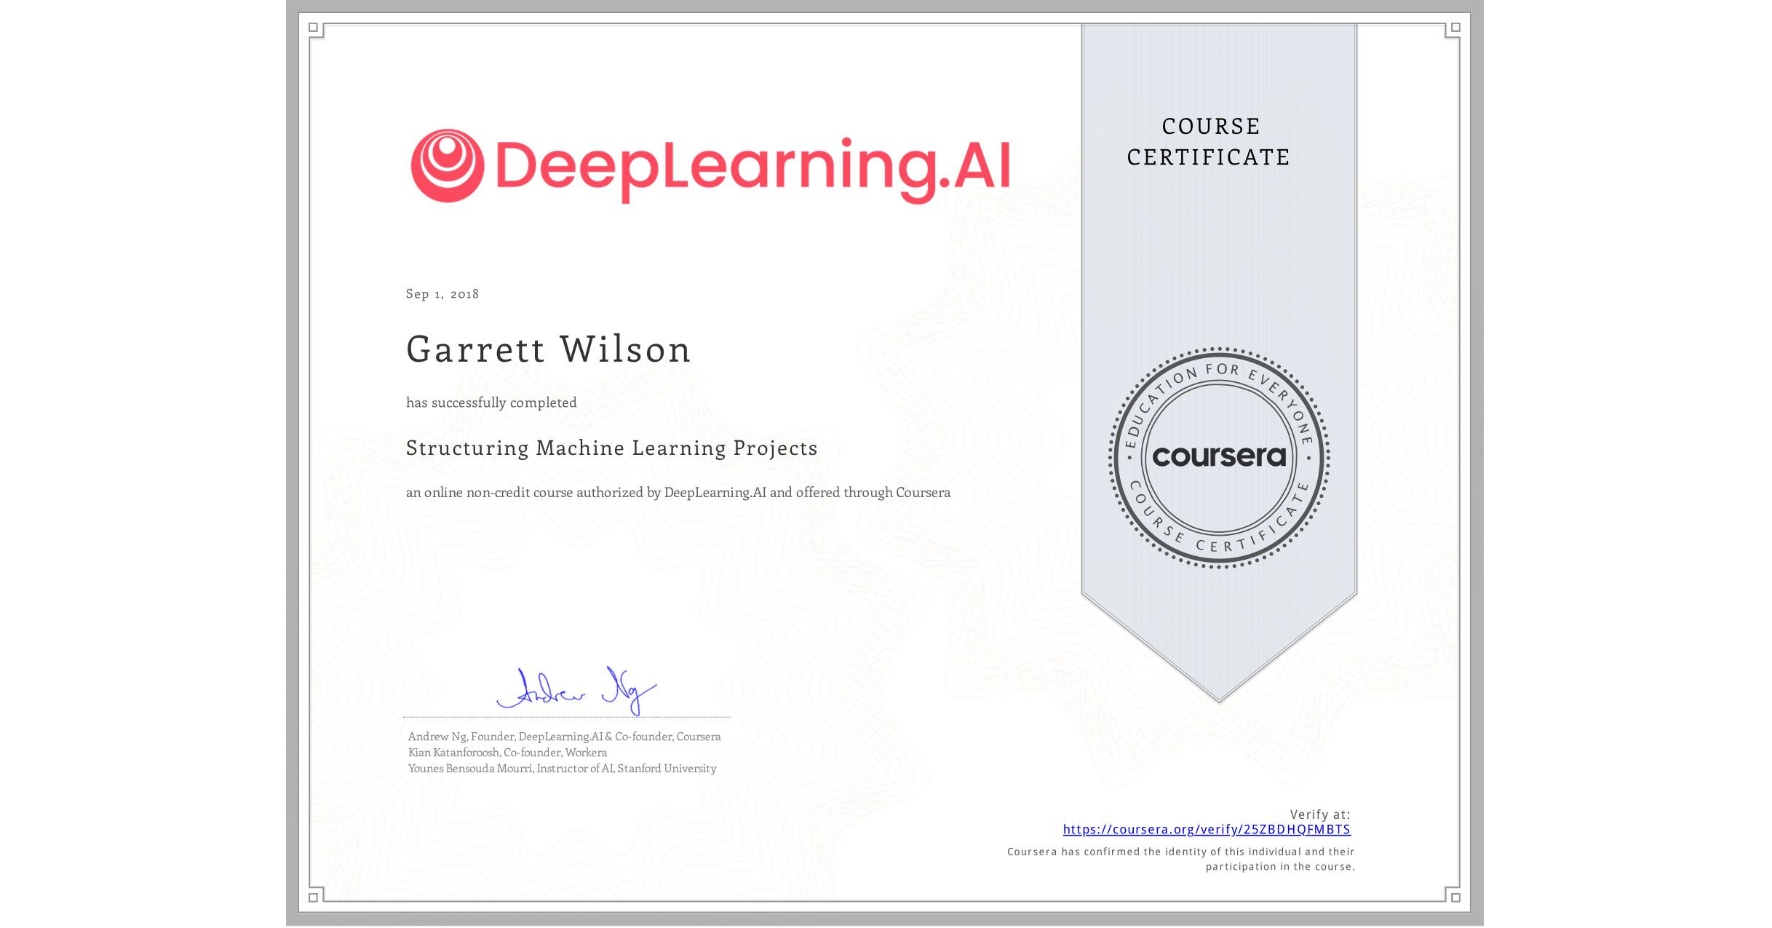 View certificate for Garrett Wilson, Structuring Machine Learning Projects, an online non-credit course authorized by DeepLearning.AI and offered through Coursera